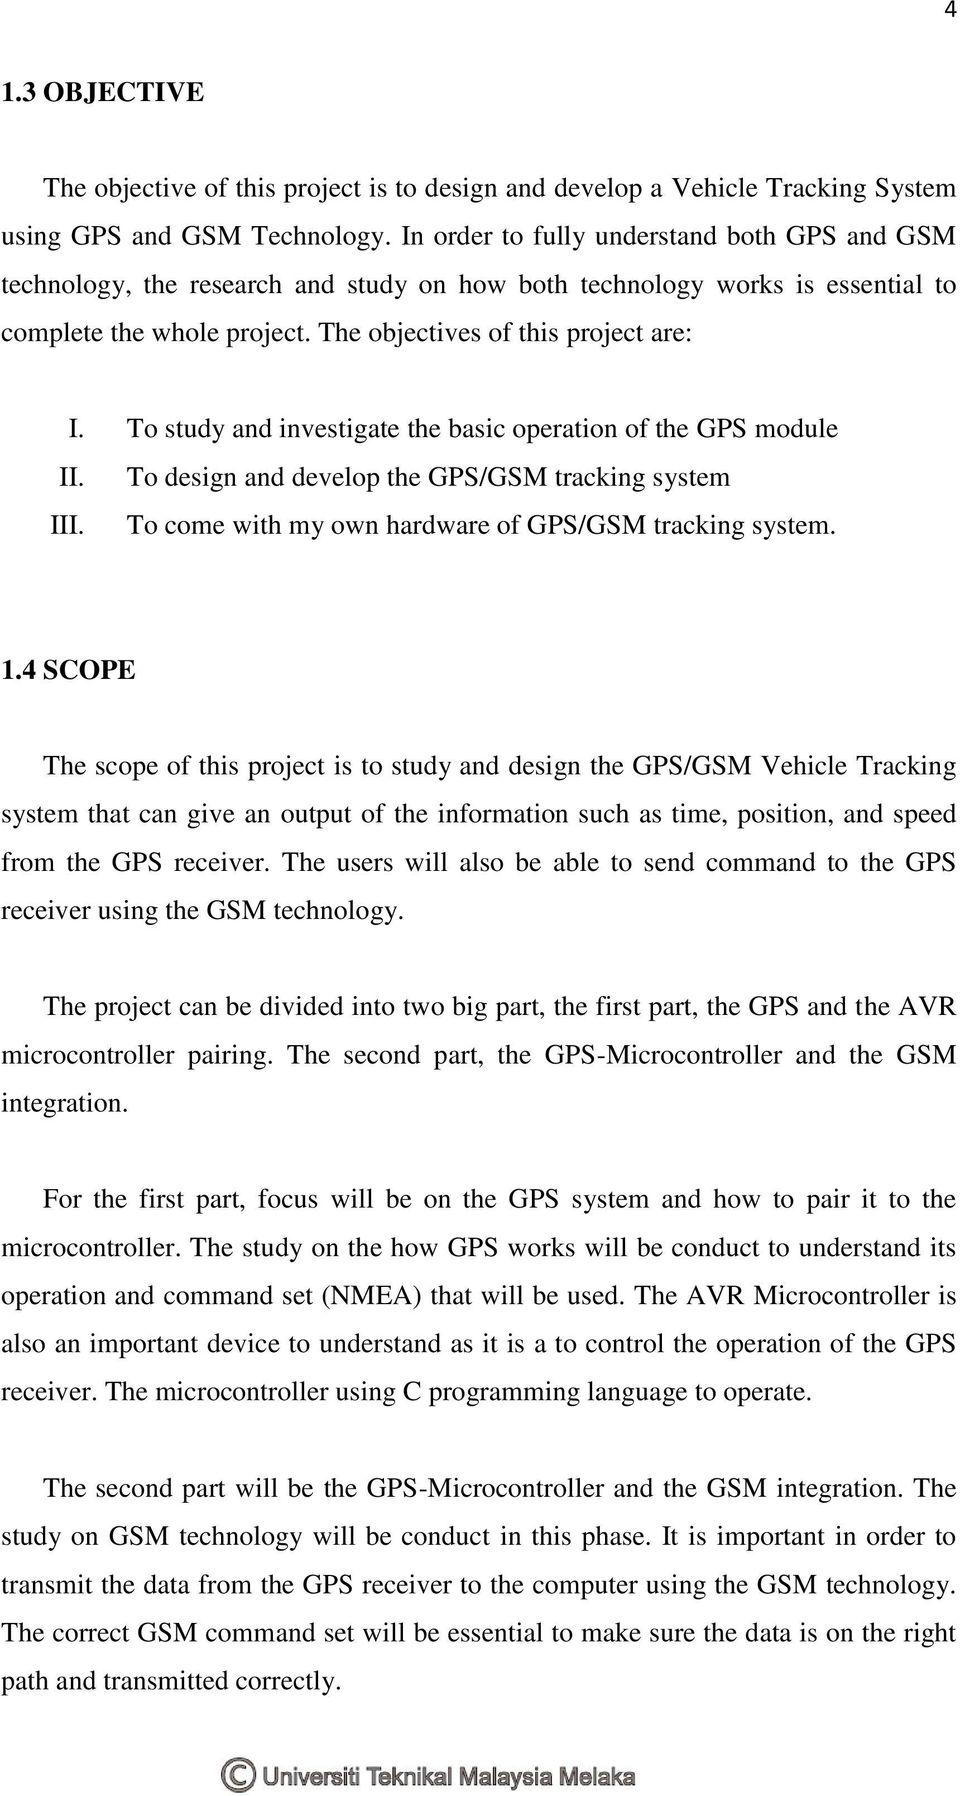 Anyone has FULL dissertation, thesis, reports or circuits on gps navigation located using gprs.?